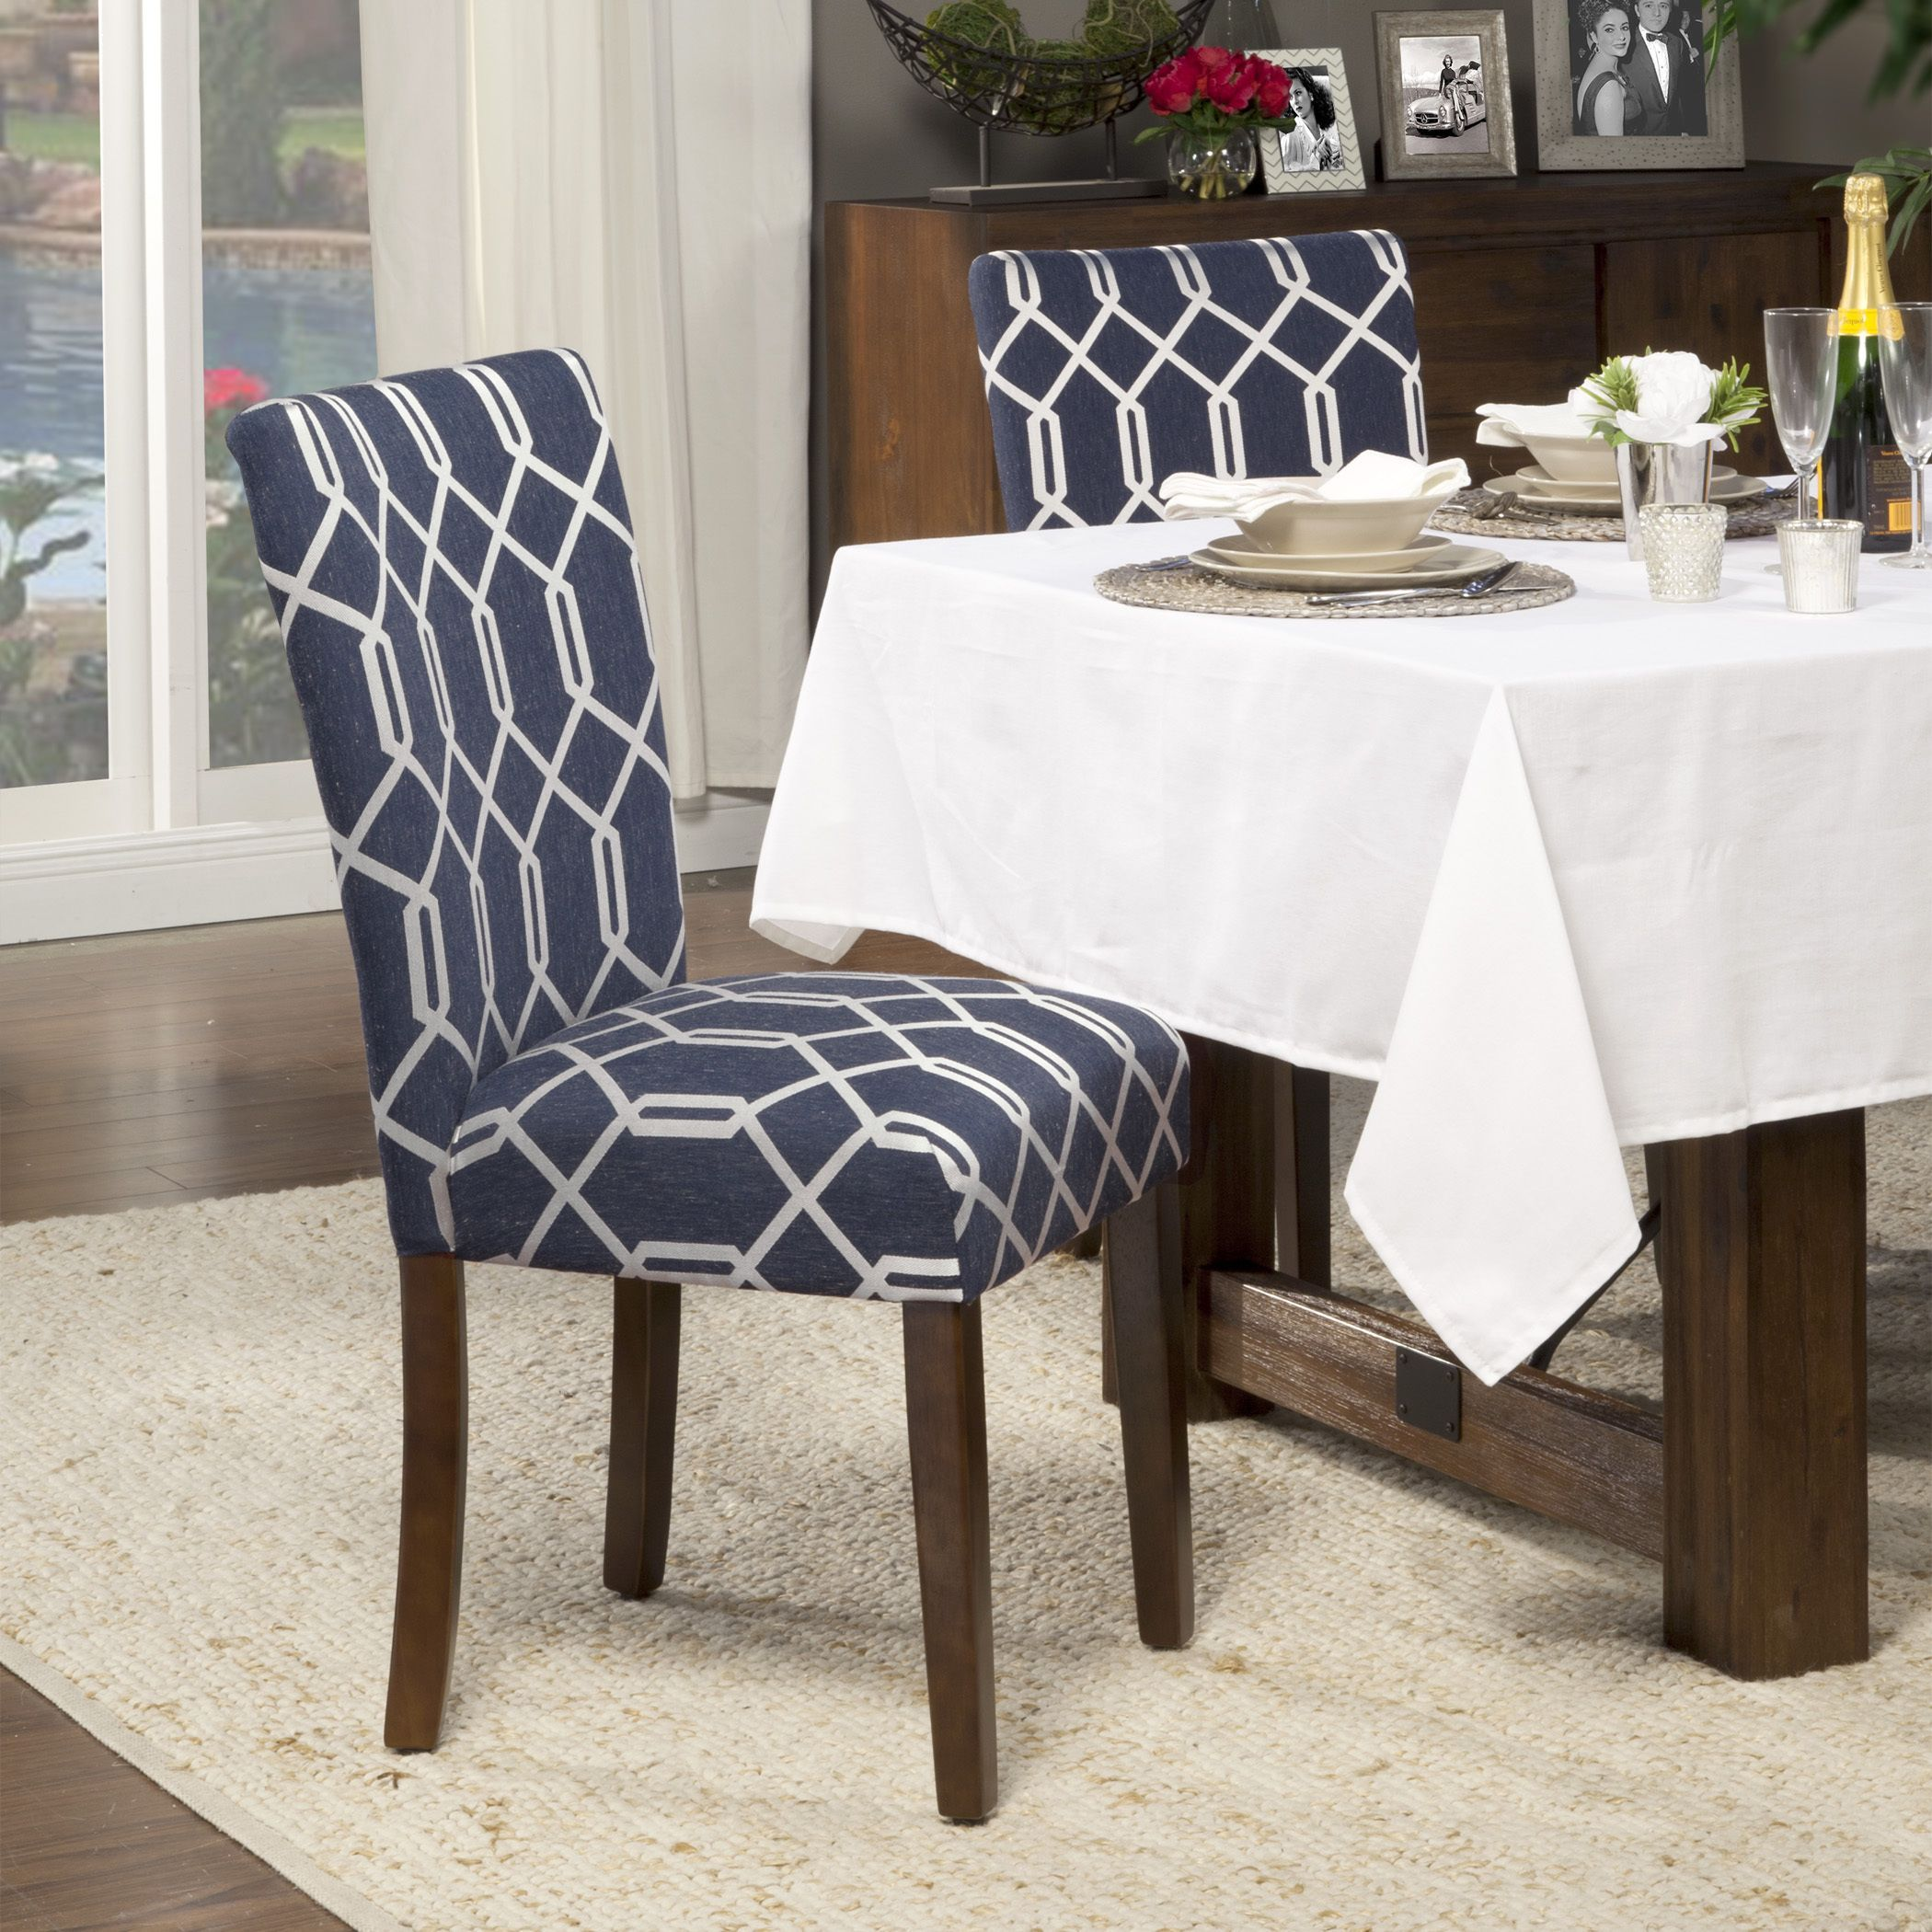 HomePop Navy Blue Cream Lattice Elegance Parson Chairs (Set Of 2) (Navy Blue